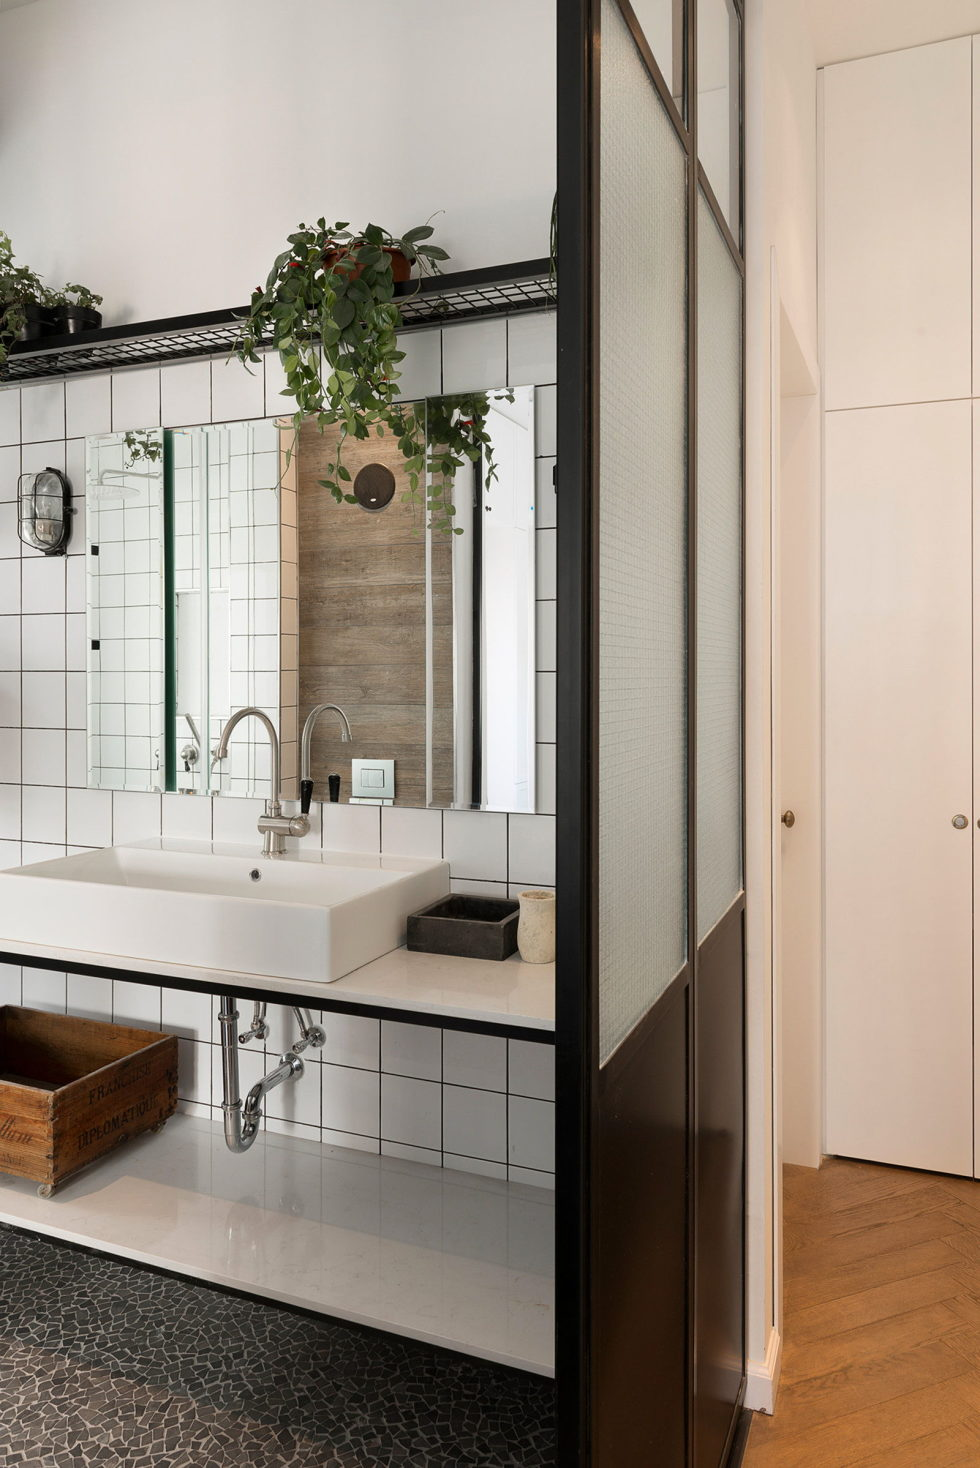 Renovation Of The Apartment In Israel From Raanans Stern's Studio 19